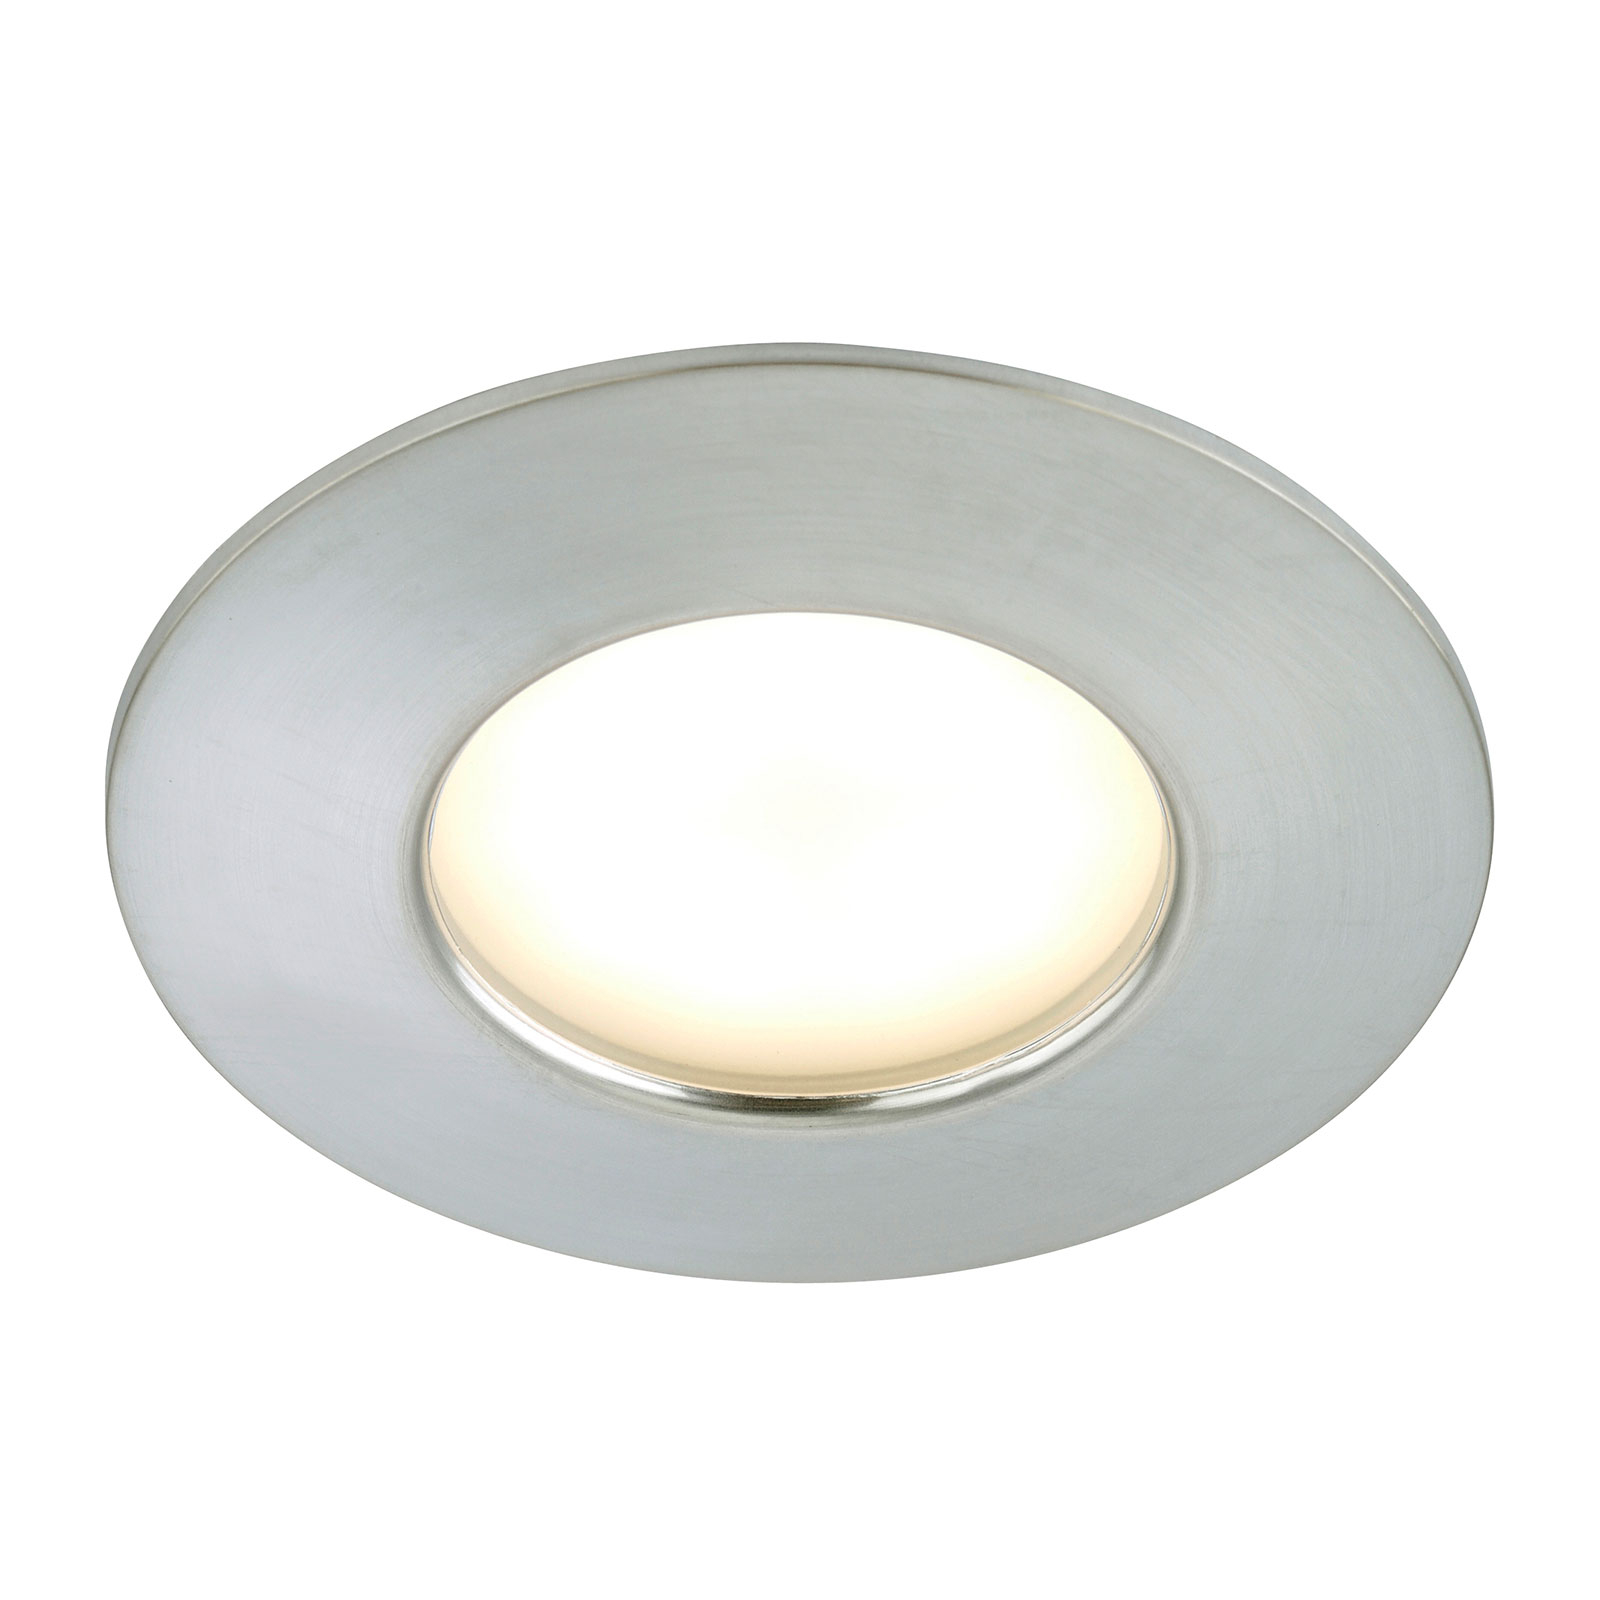 Aluminium-coloured LED recessed light Felia, IP44_1510320_1